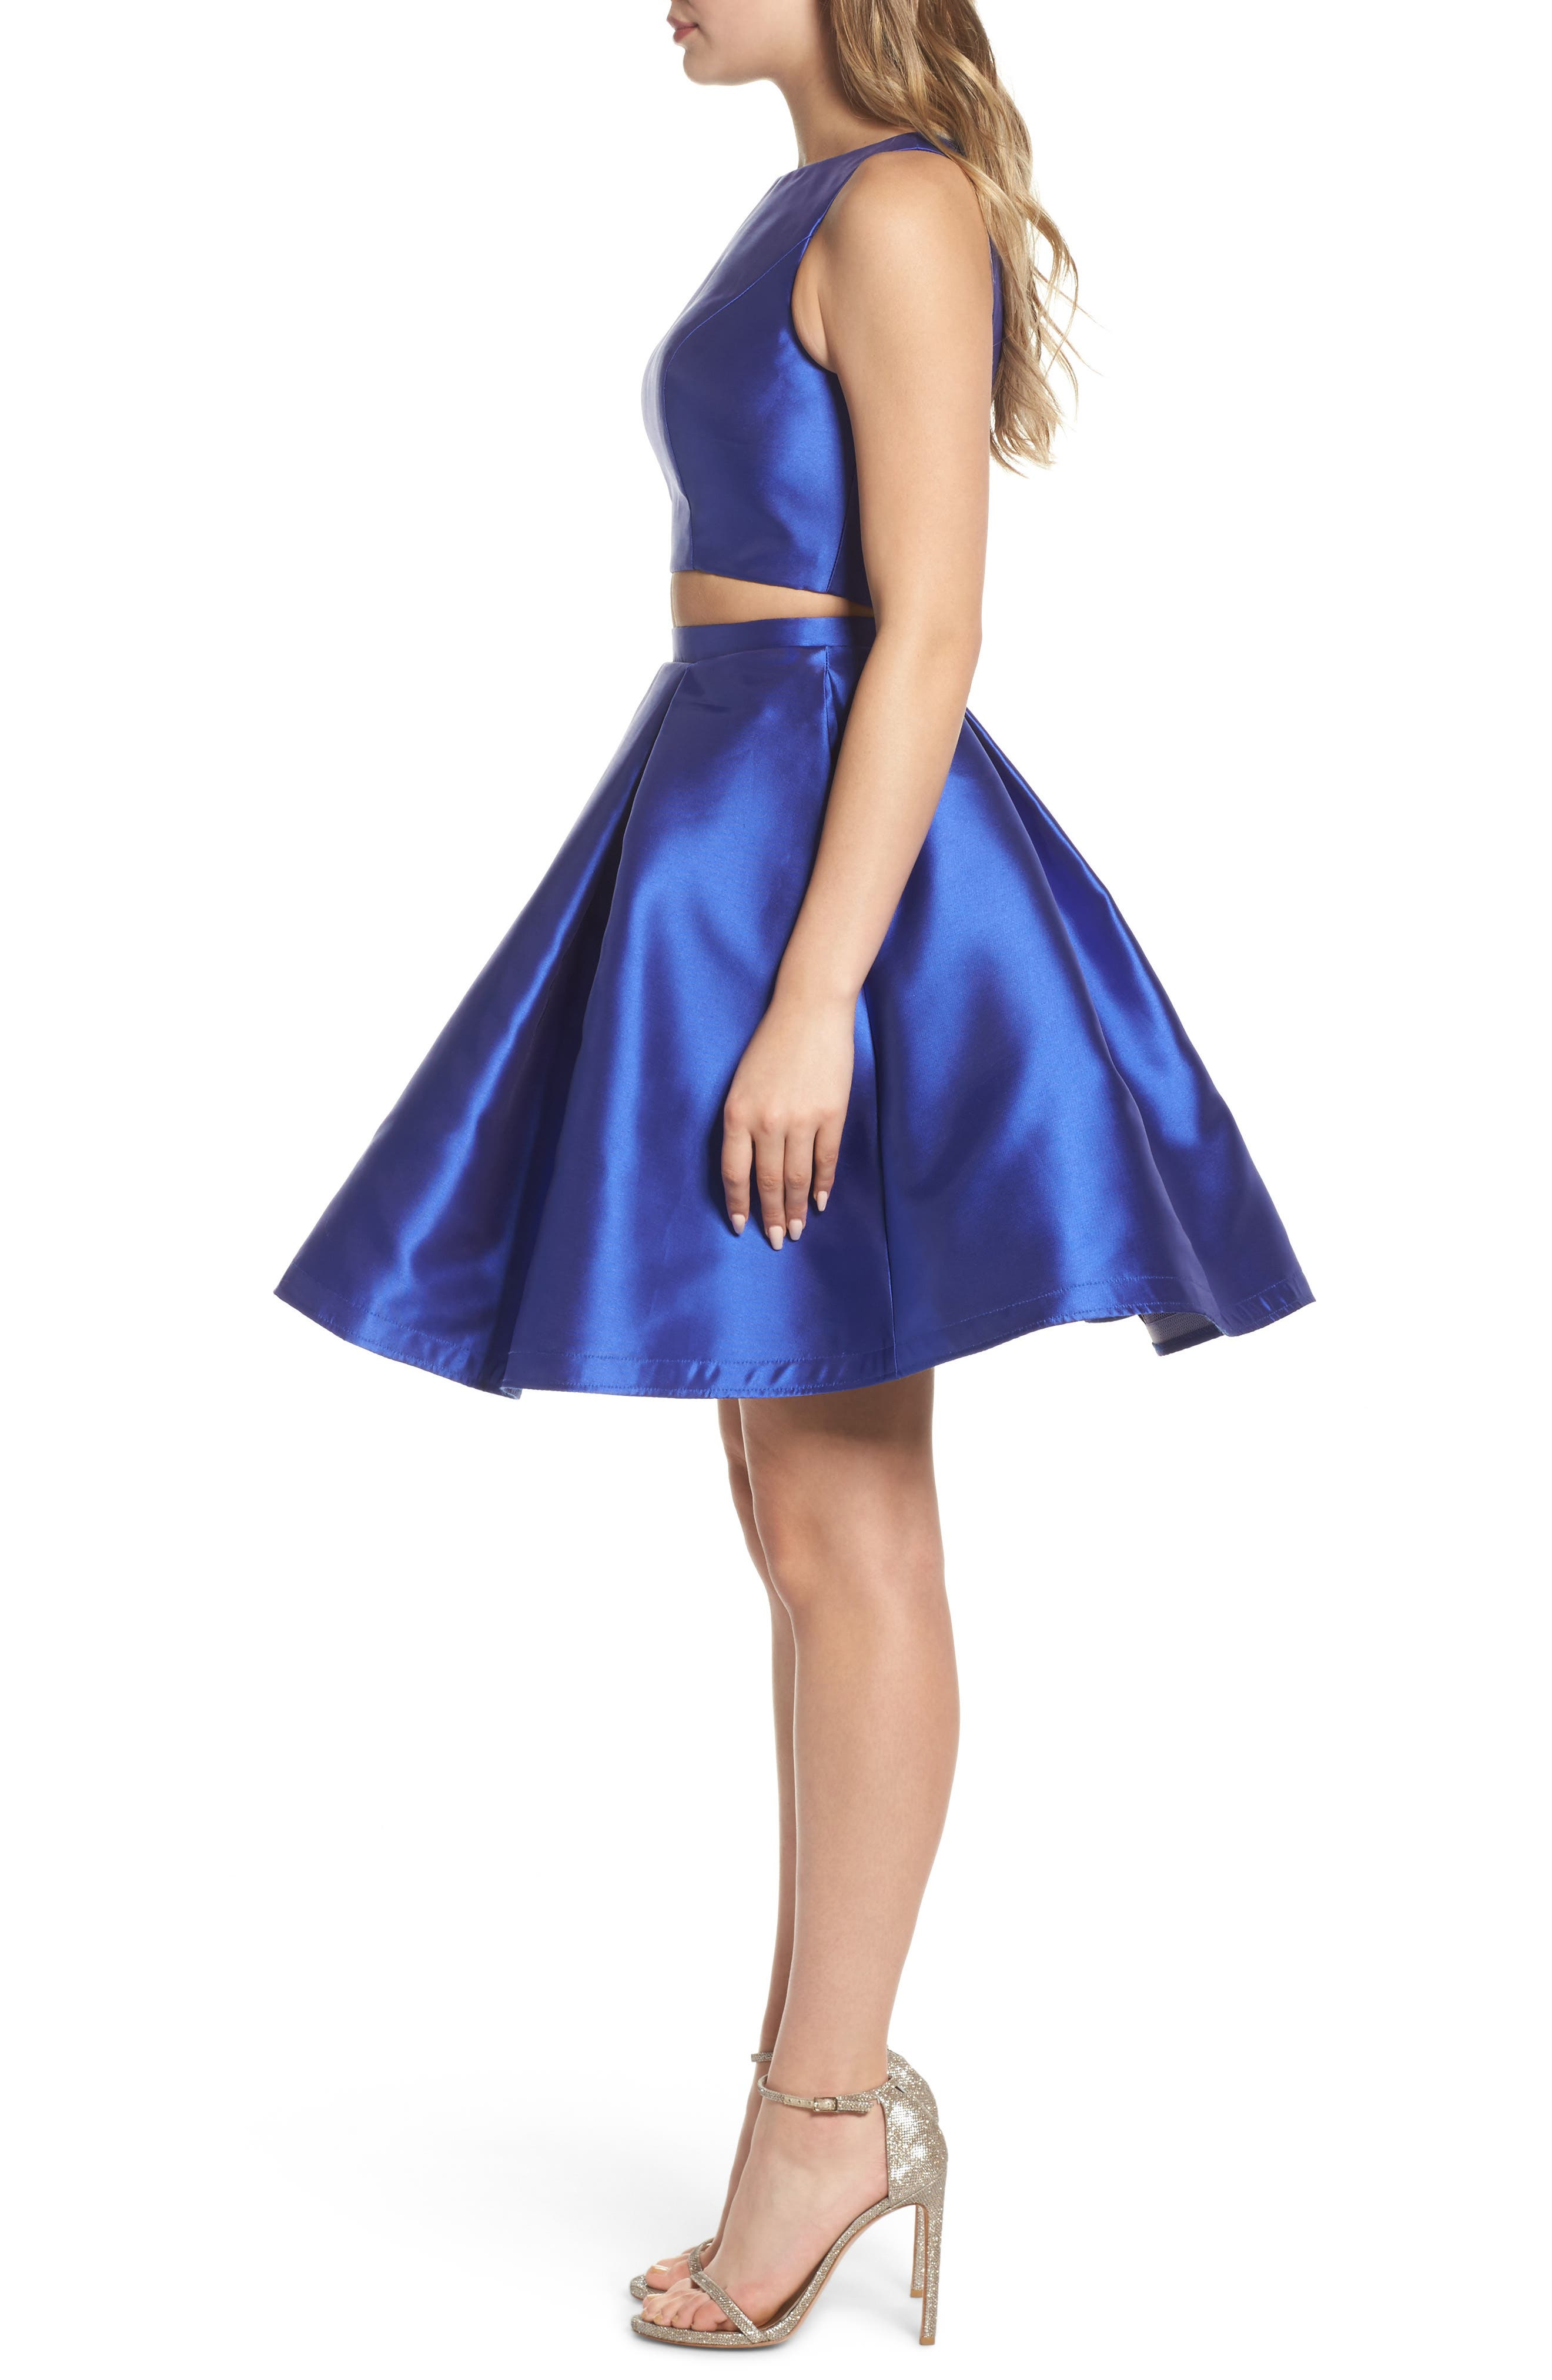 Skater Skirt Two-Piece Dress,                             Alternate thumbnail 3, color,                             Sapphire